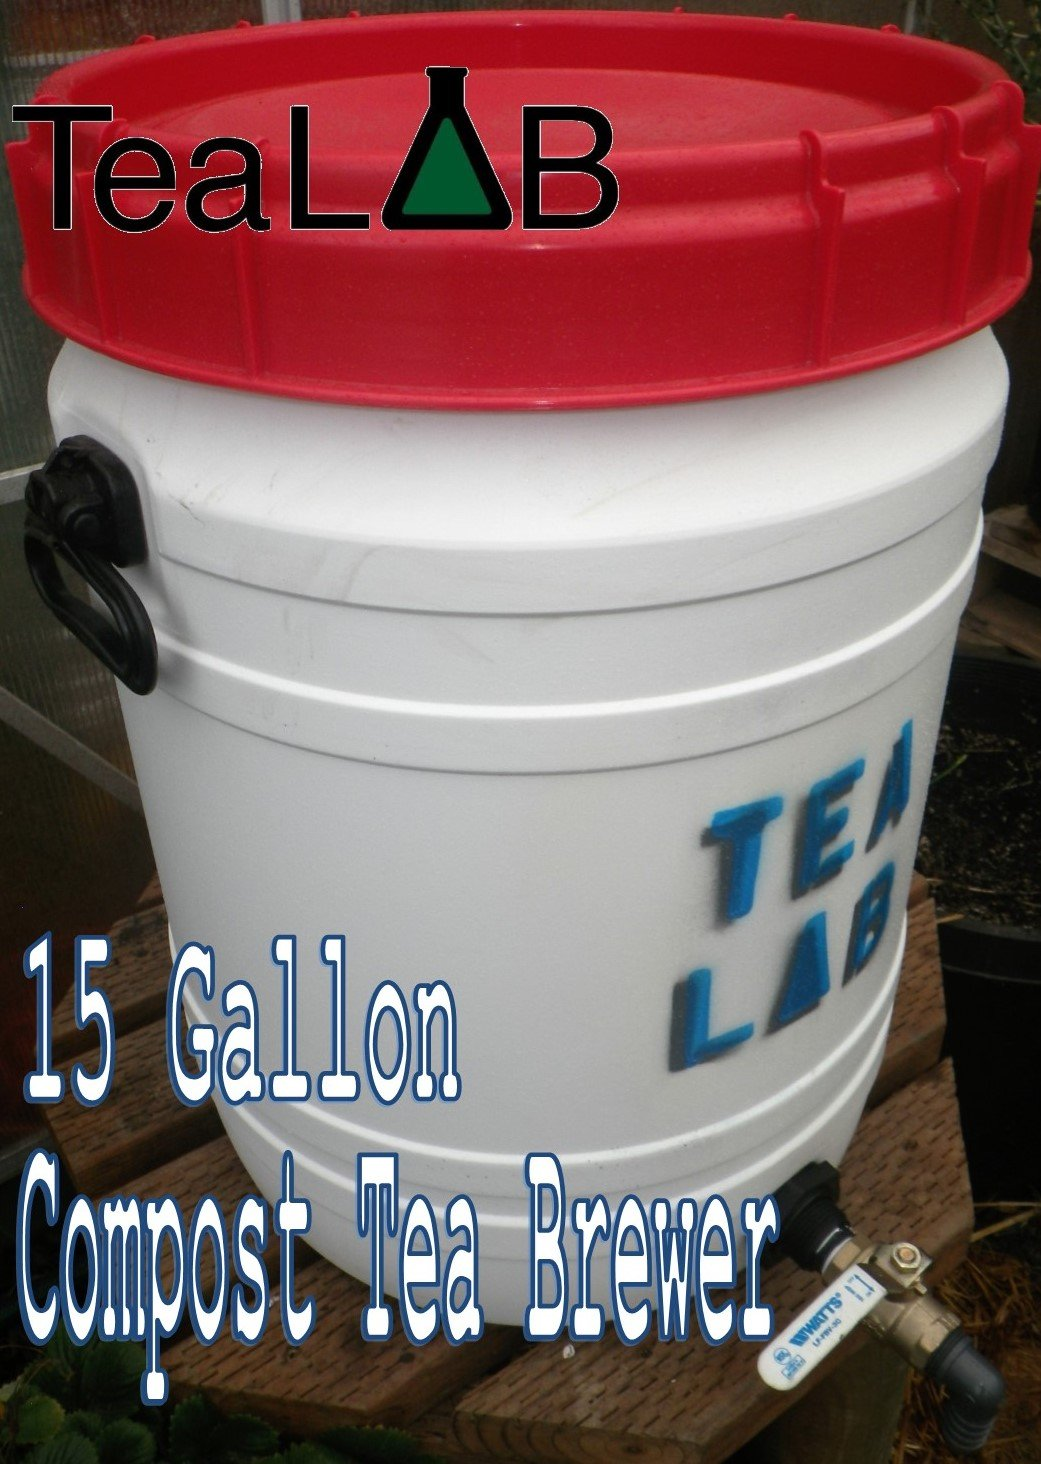 Compost Tea Brewer : 15 Gallon : Convenient Size for the Avid Home Gardener. by TeaLAB